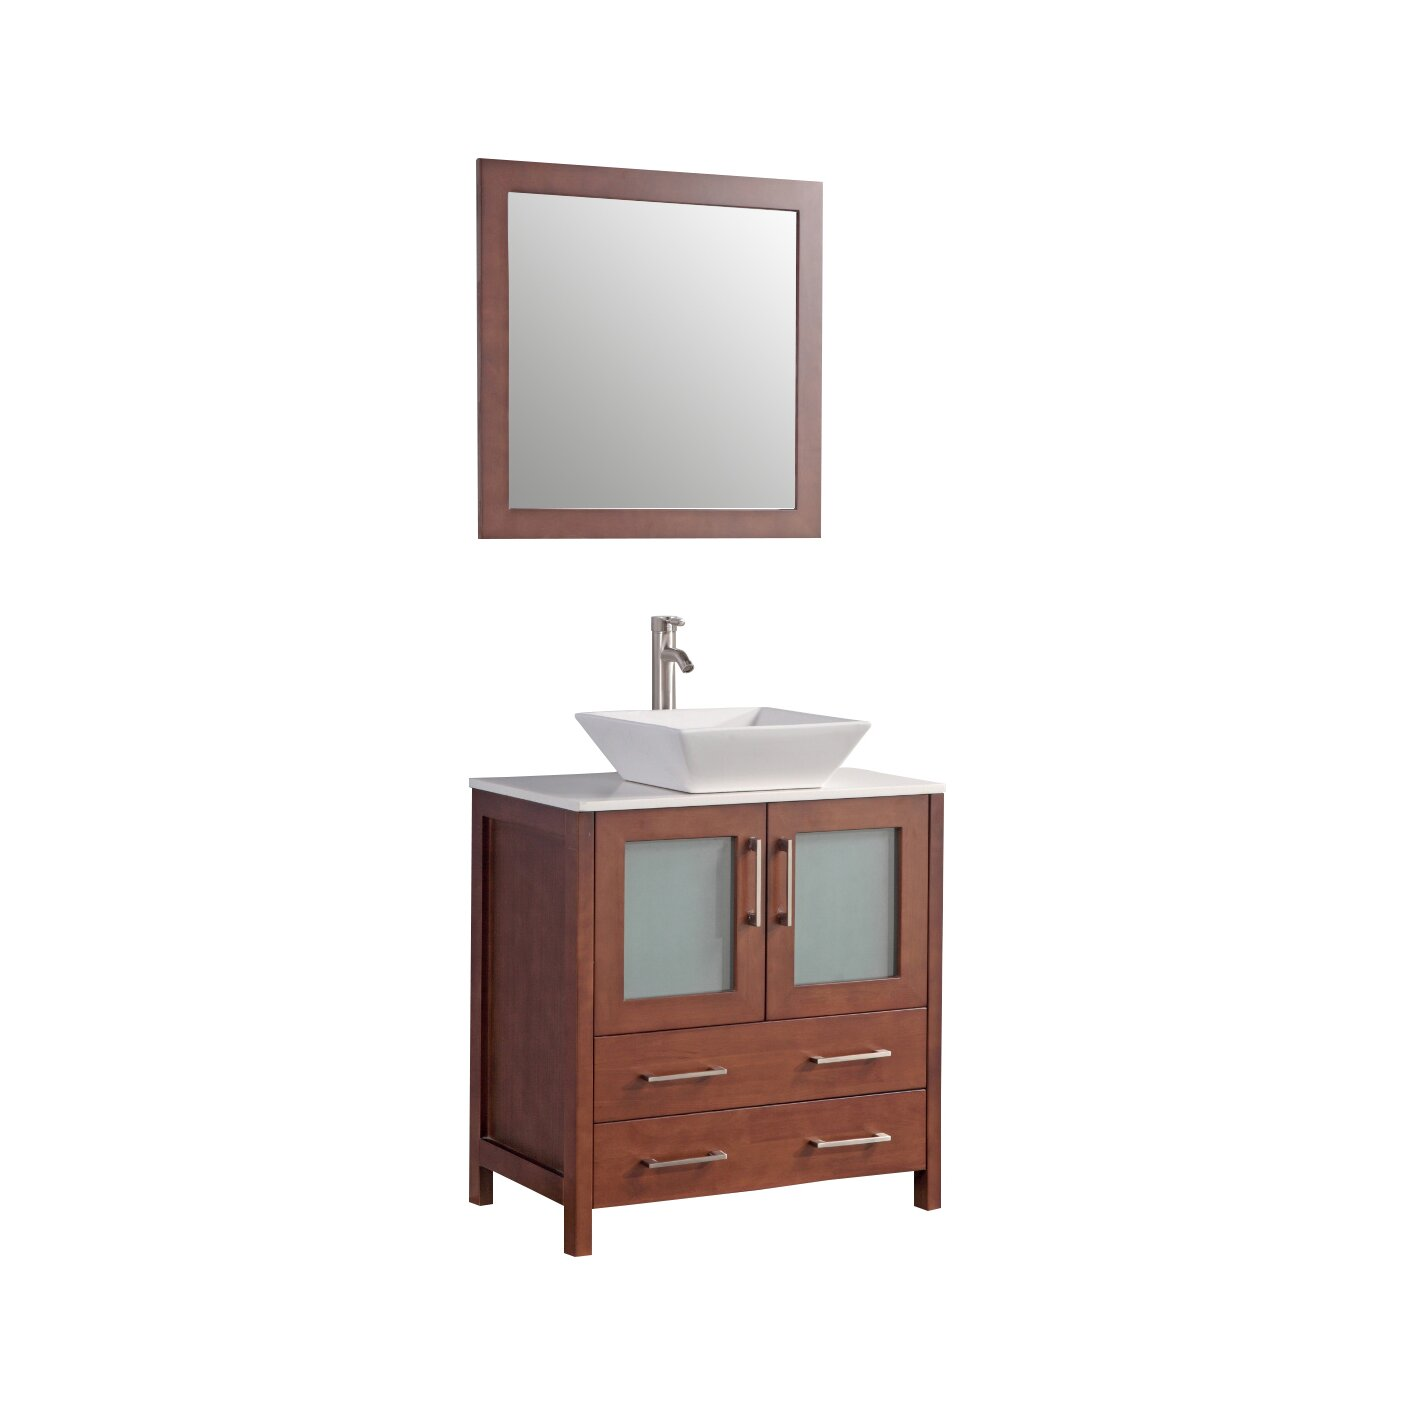 Legion furniture 30 single bathroom vanity set with for Legion furniture 30 inch bathroom vanity